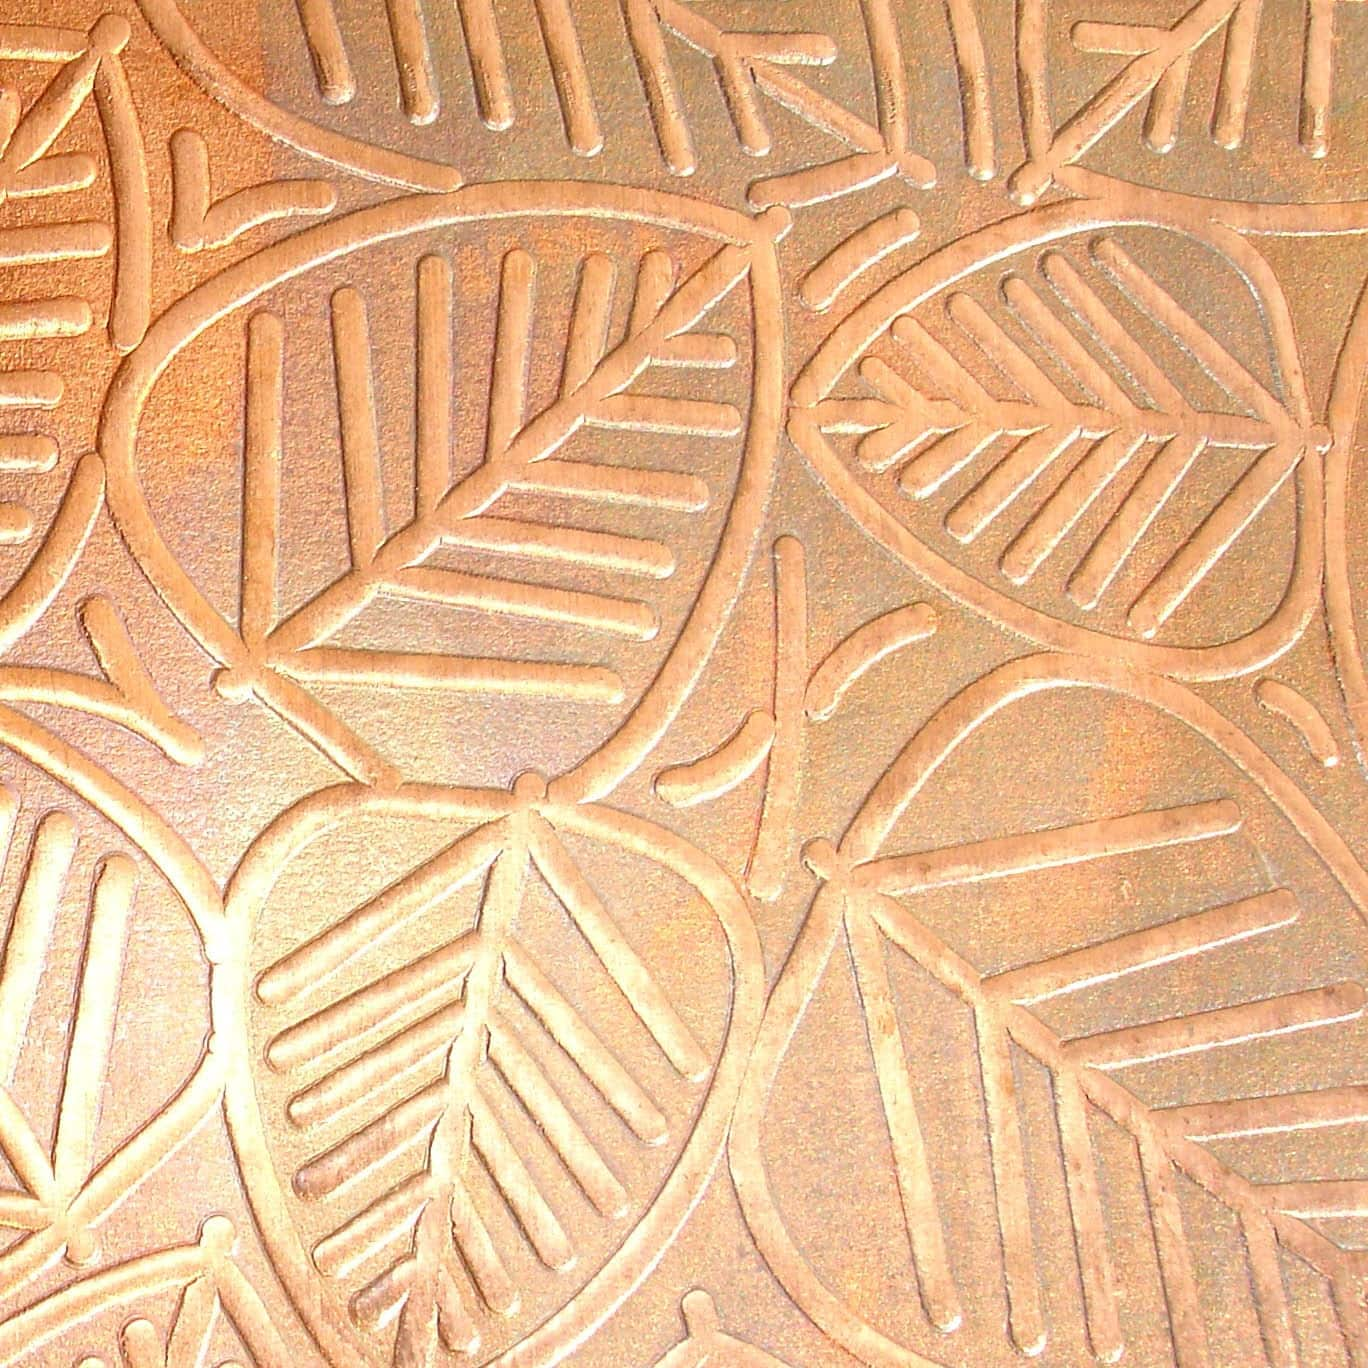 Textured Copper Sheet Metal Leaves Patina Copper By